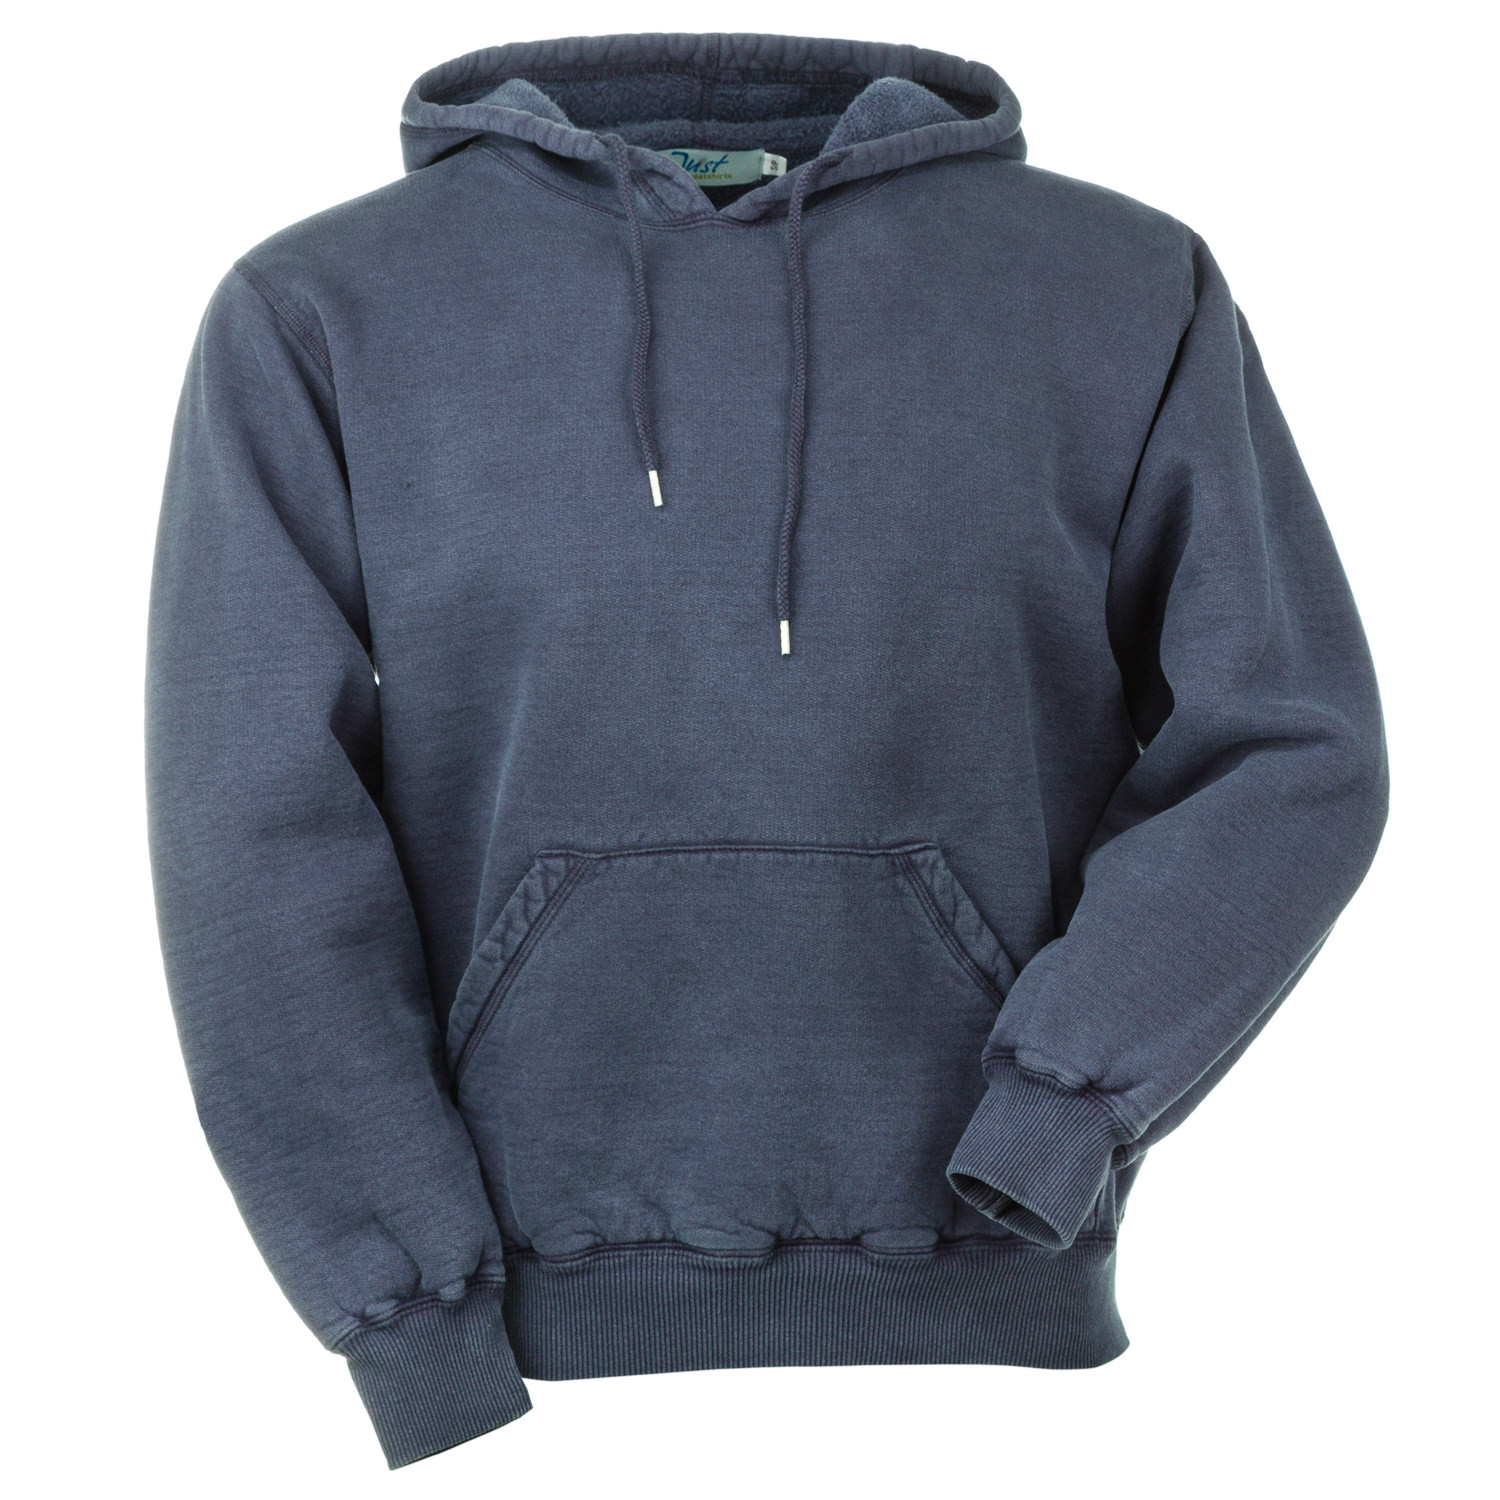 Hooded Pullover Navy Sand 100% Cotton